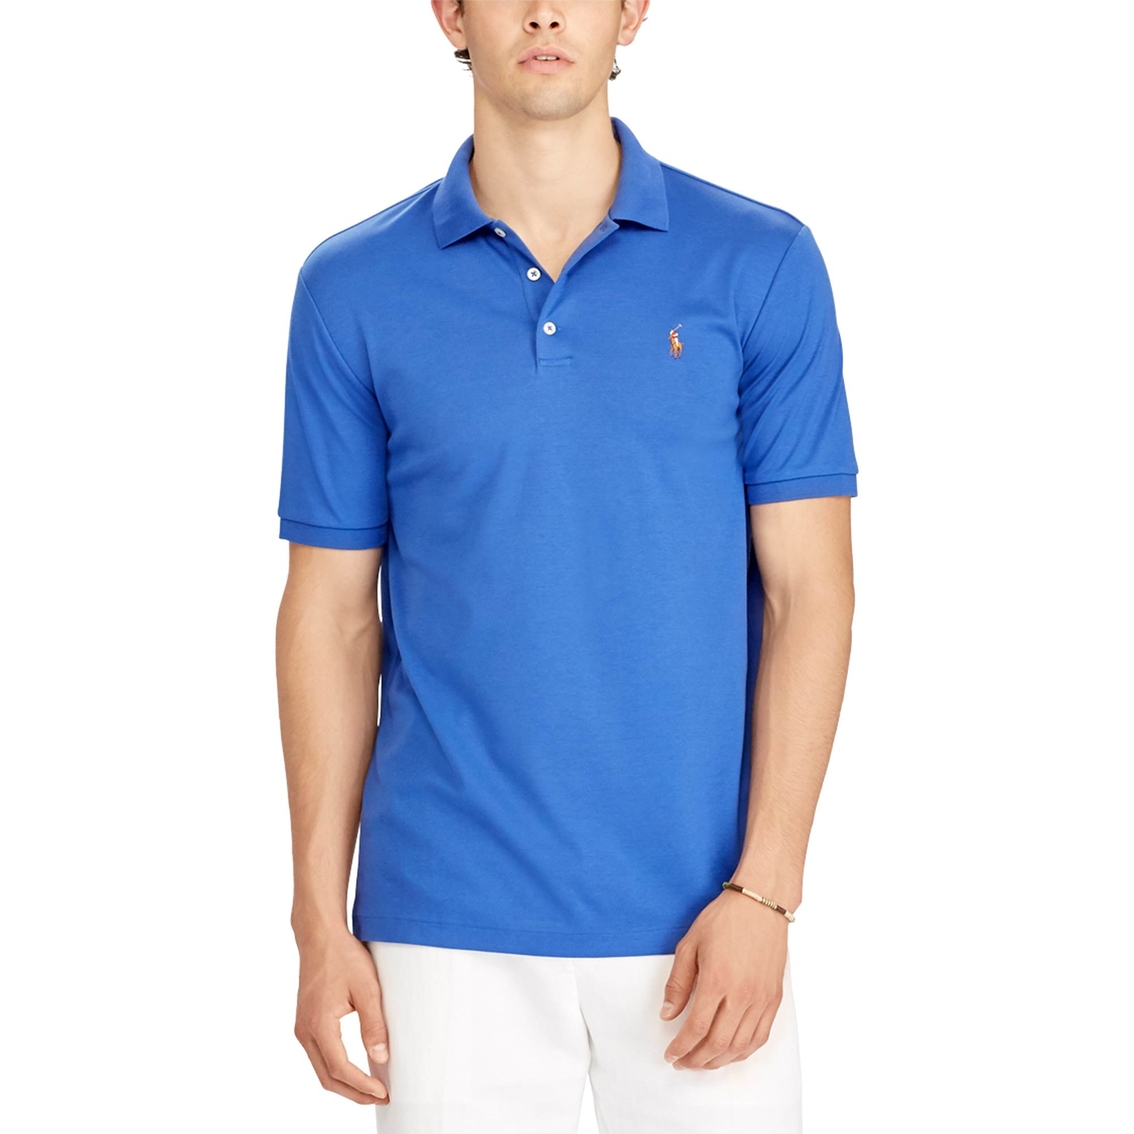 181117dda9 Polo Ralph Lauren Classic Fit Soft Touch Polo | Polo Ralph Lauren ...